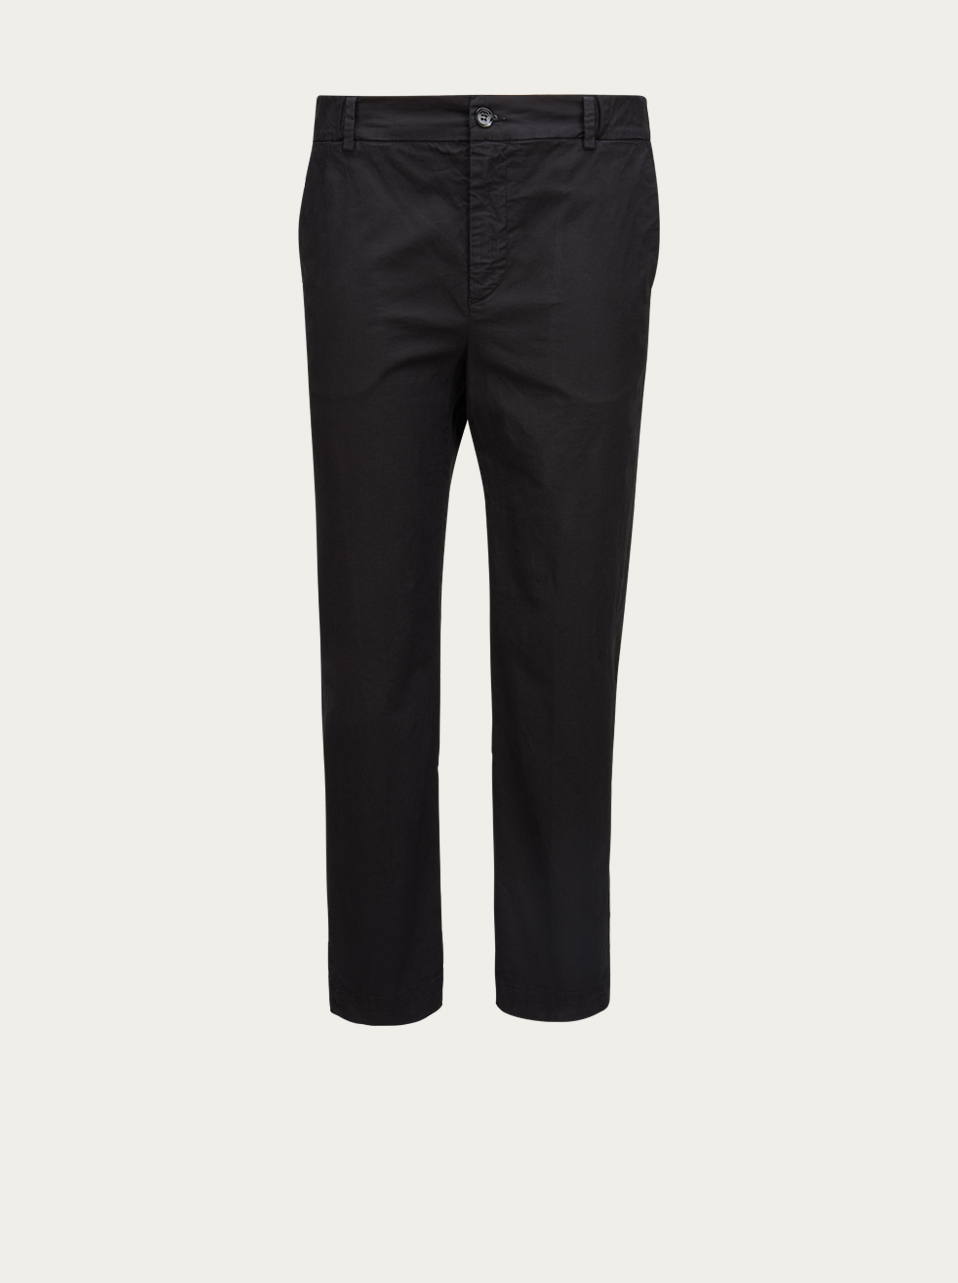 TRUE NYC DENIM Chino-Hose in Schwarz